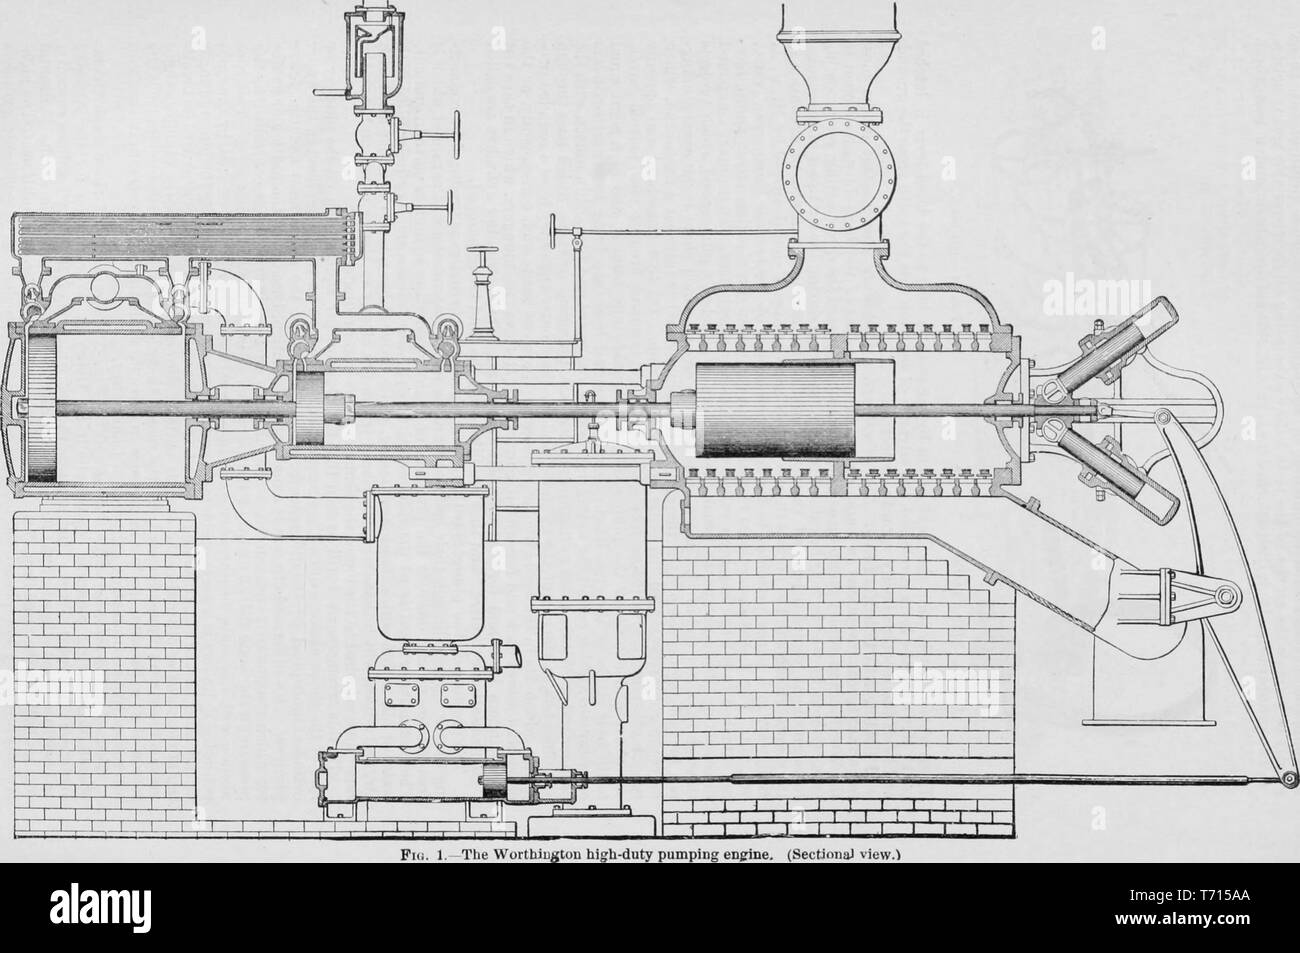 Engraving of the Worthington high-duty pumping engine, from the book 'Modern Mechanism' by Park Benjamin, 1892. Courtesy Internet Archive. () - Stock Image